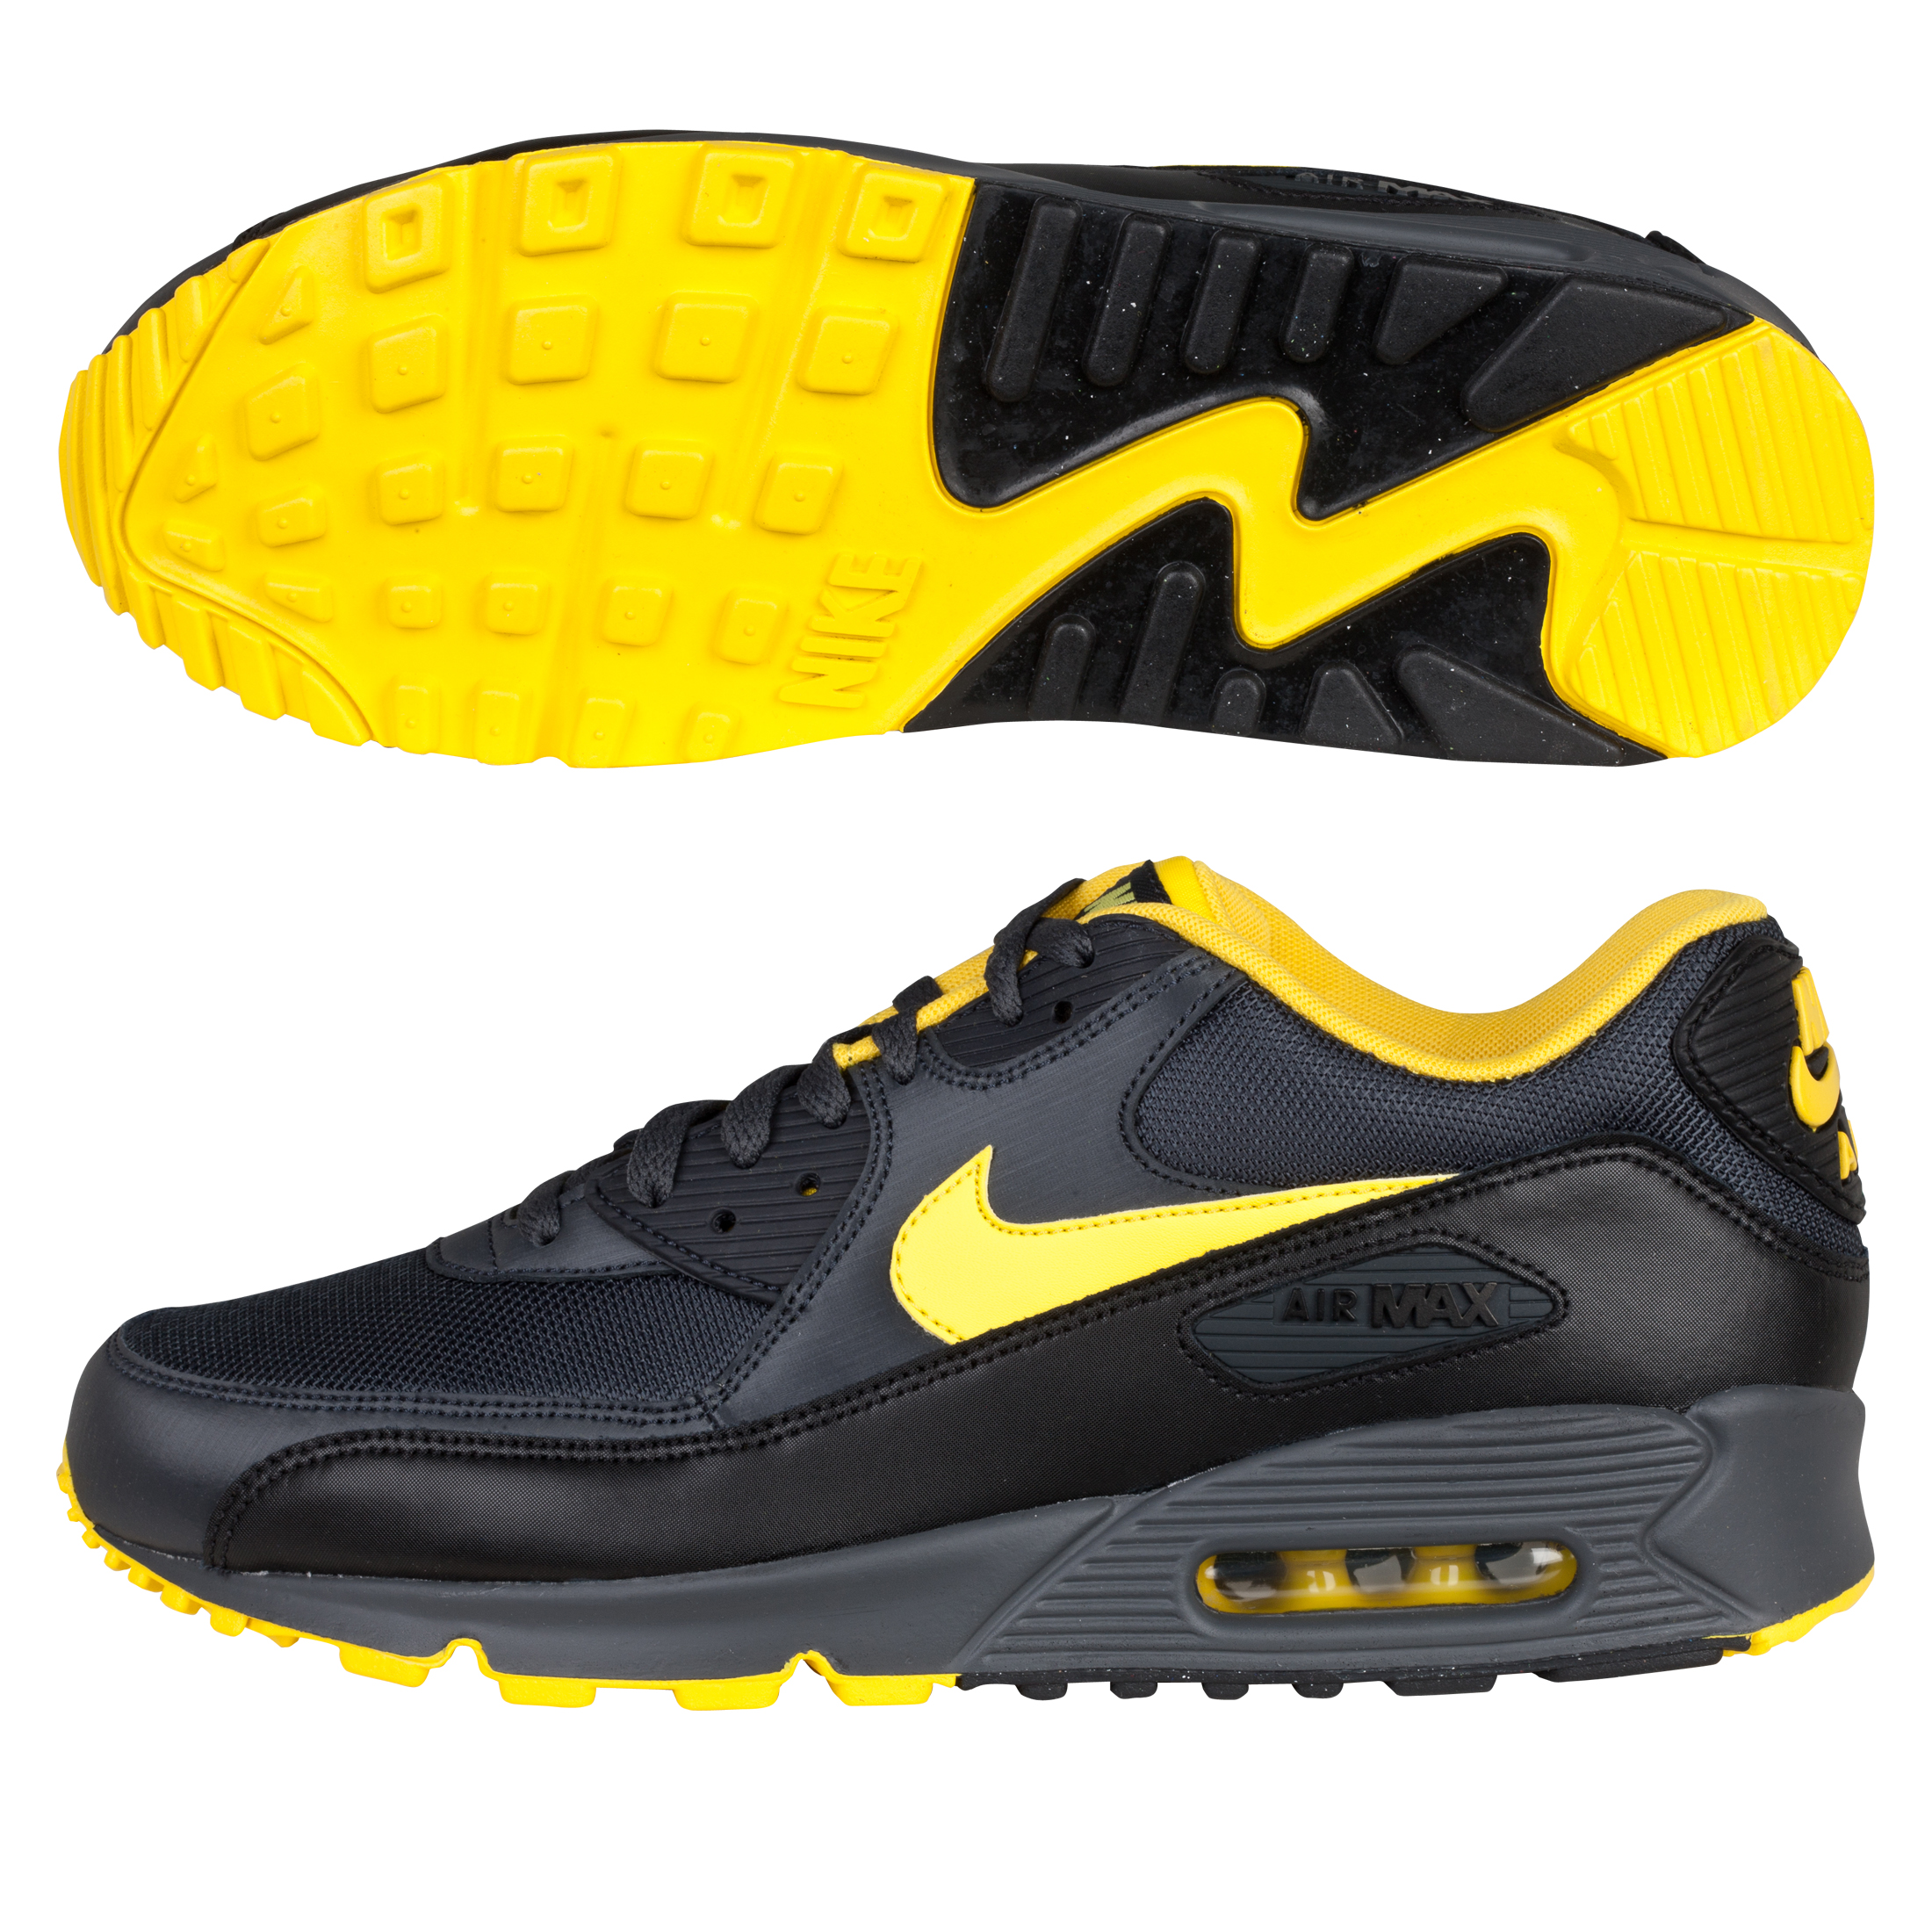 Nike Air Max 90 inch08 Trainers - Anthracite/Speed Yellow/Black/Natural Grey